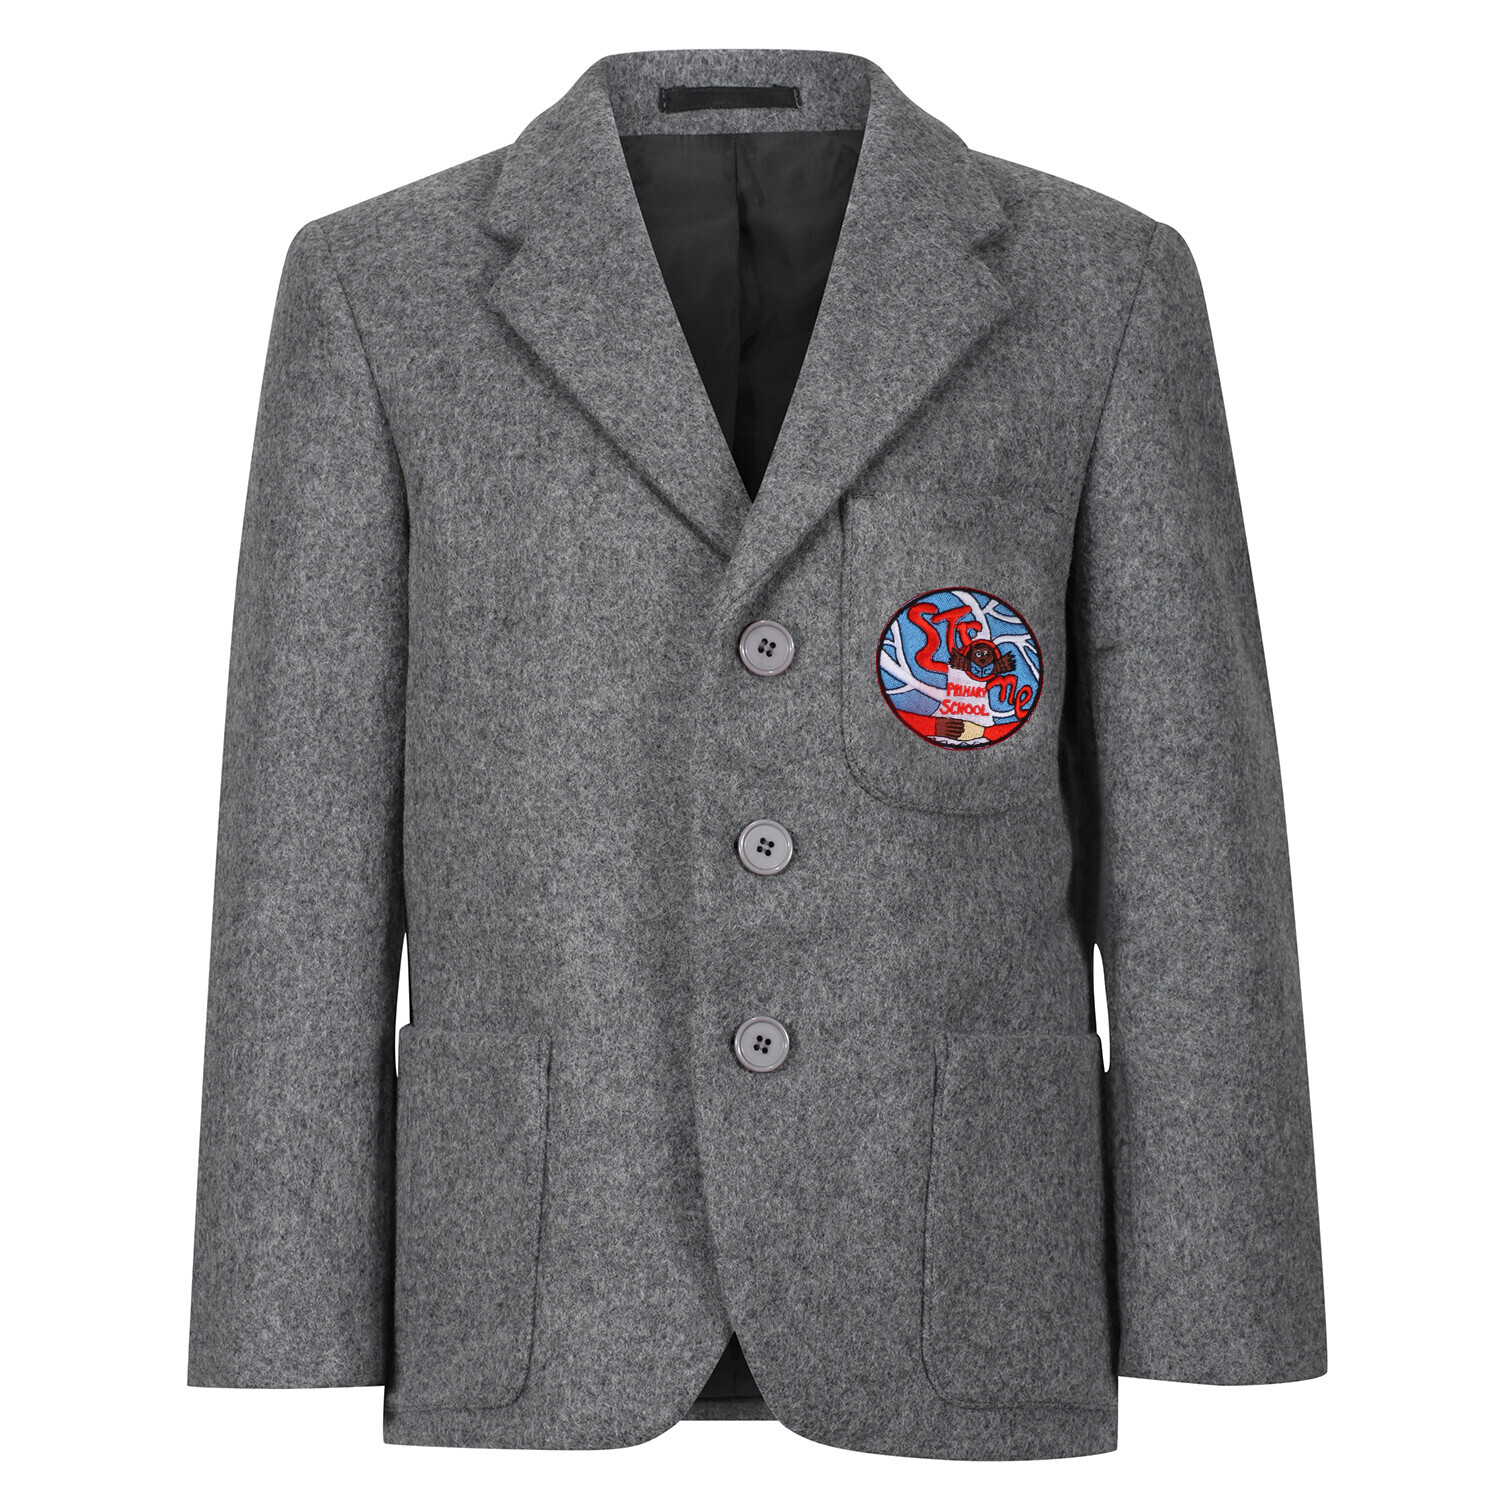 Strone Primary 'Wool' Blazer (Made-to-Order)